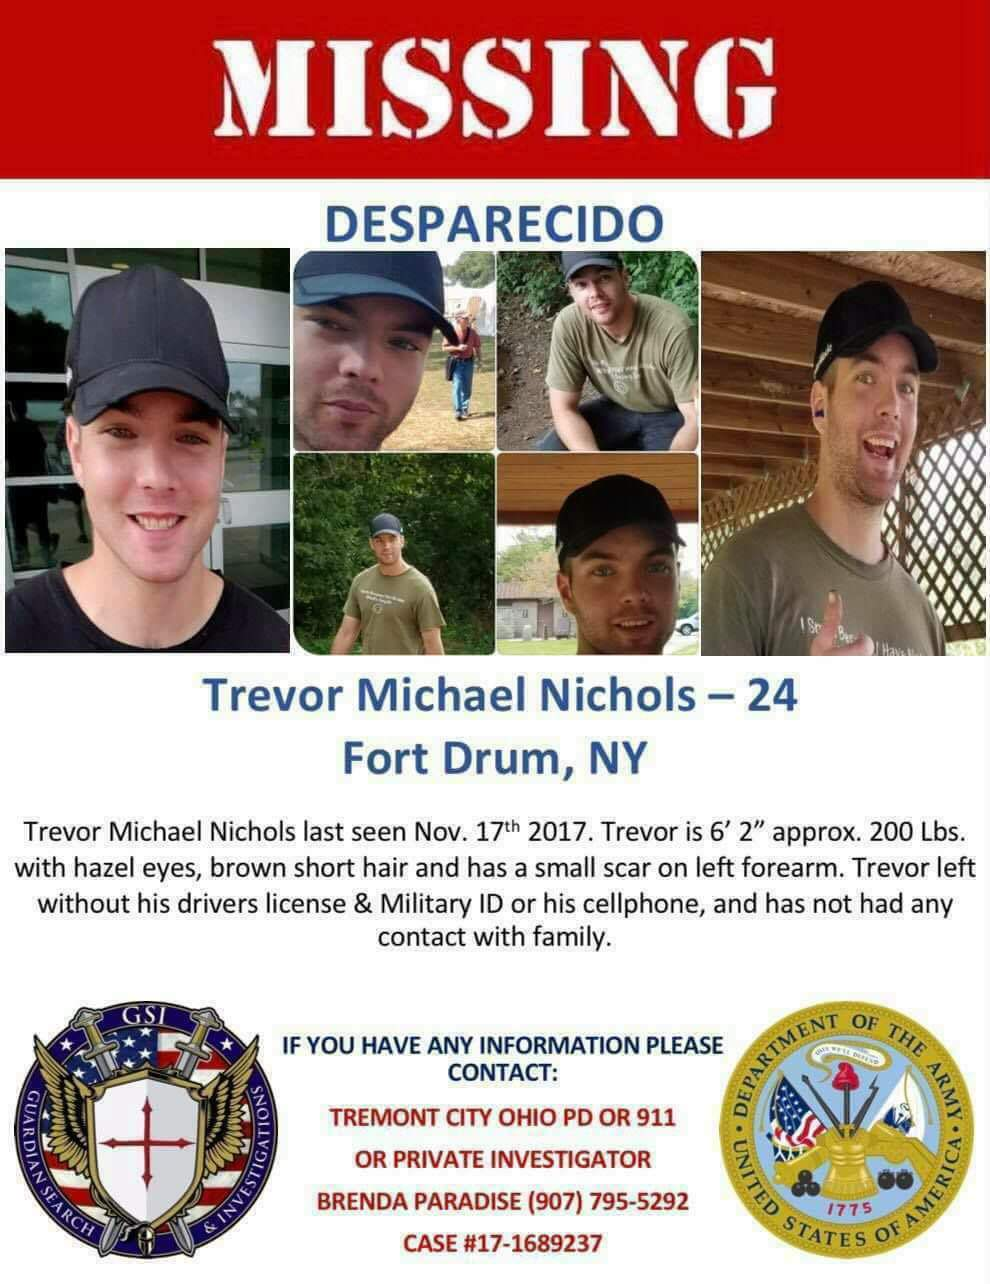 missing person flyer NY Trevor Nichols  US Army